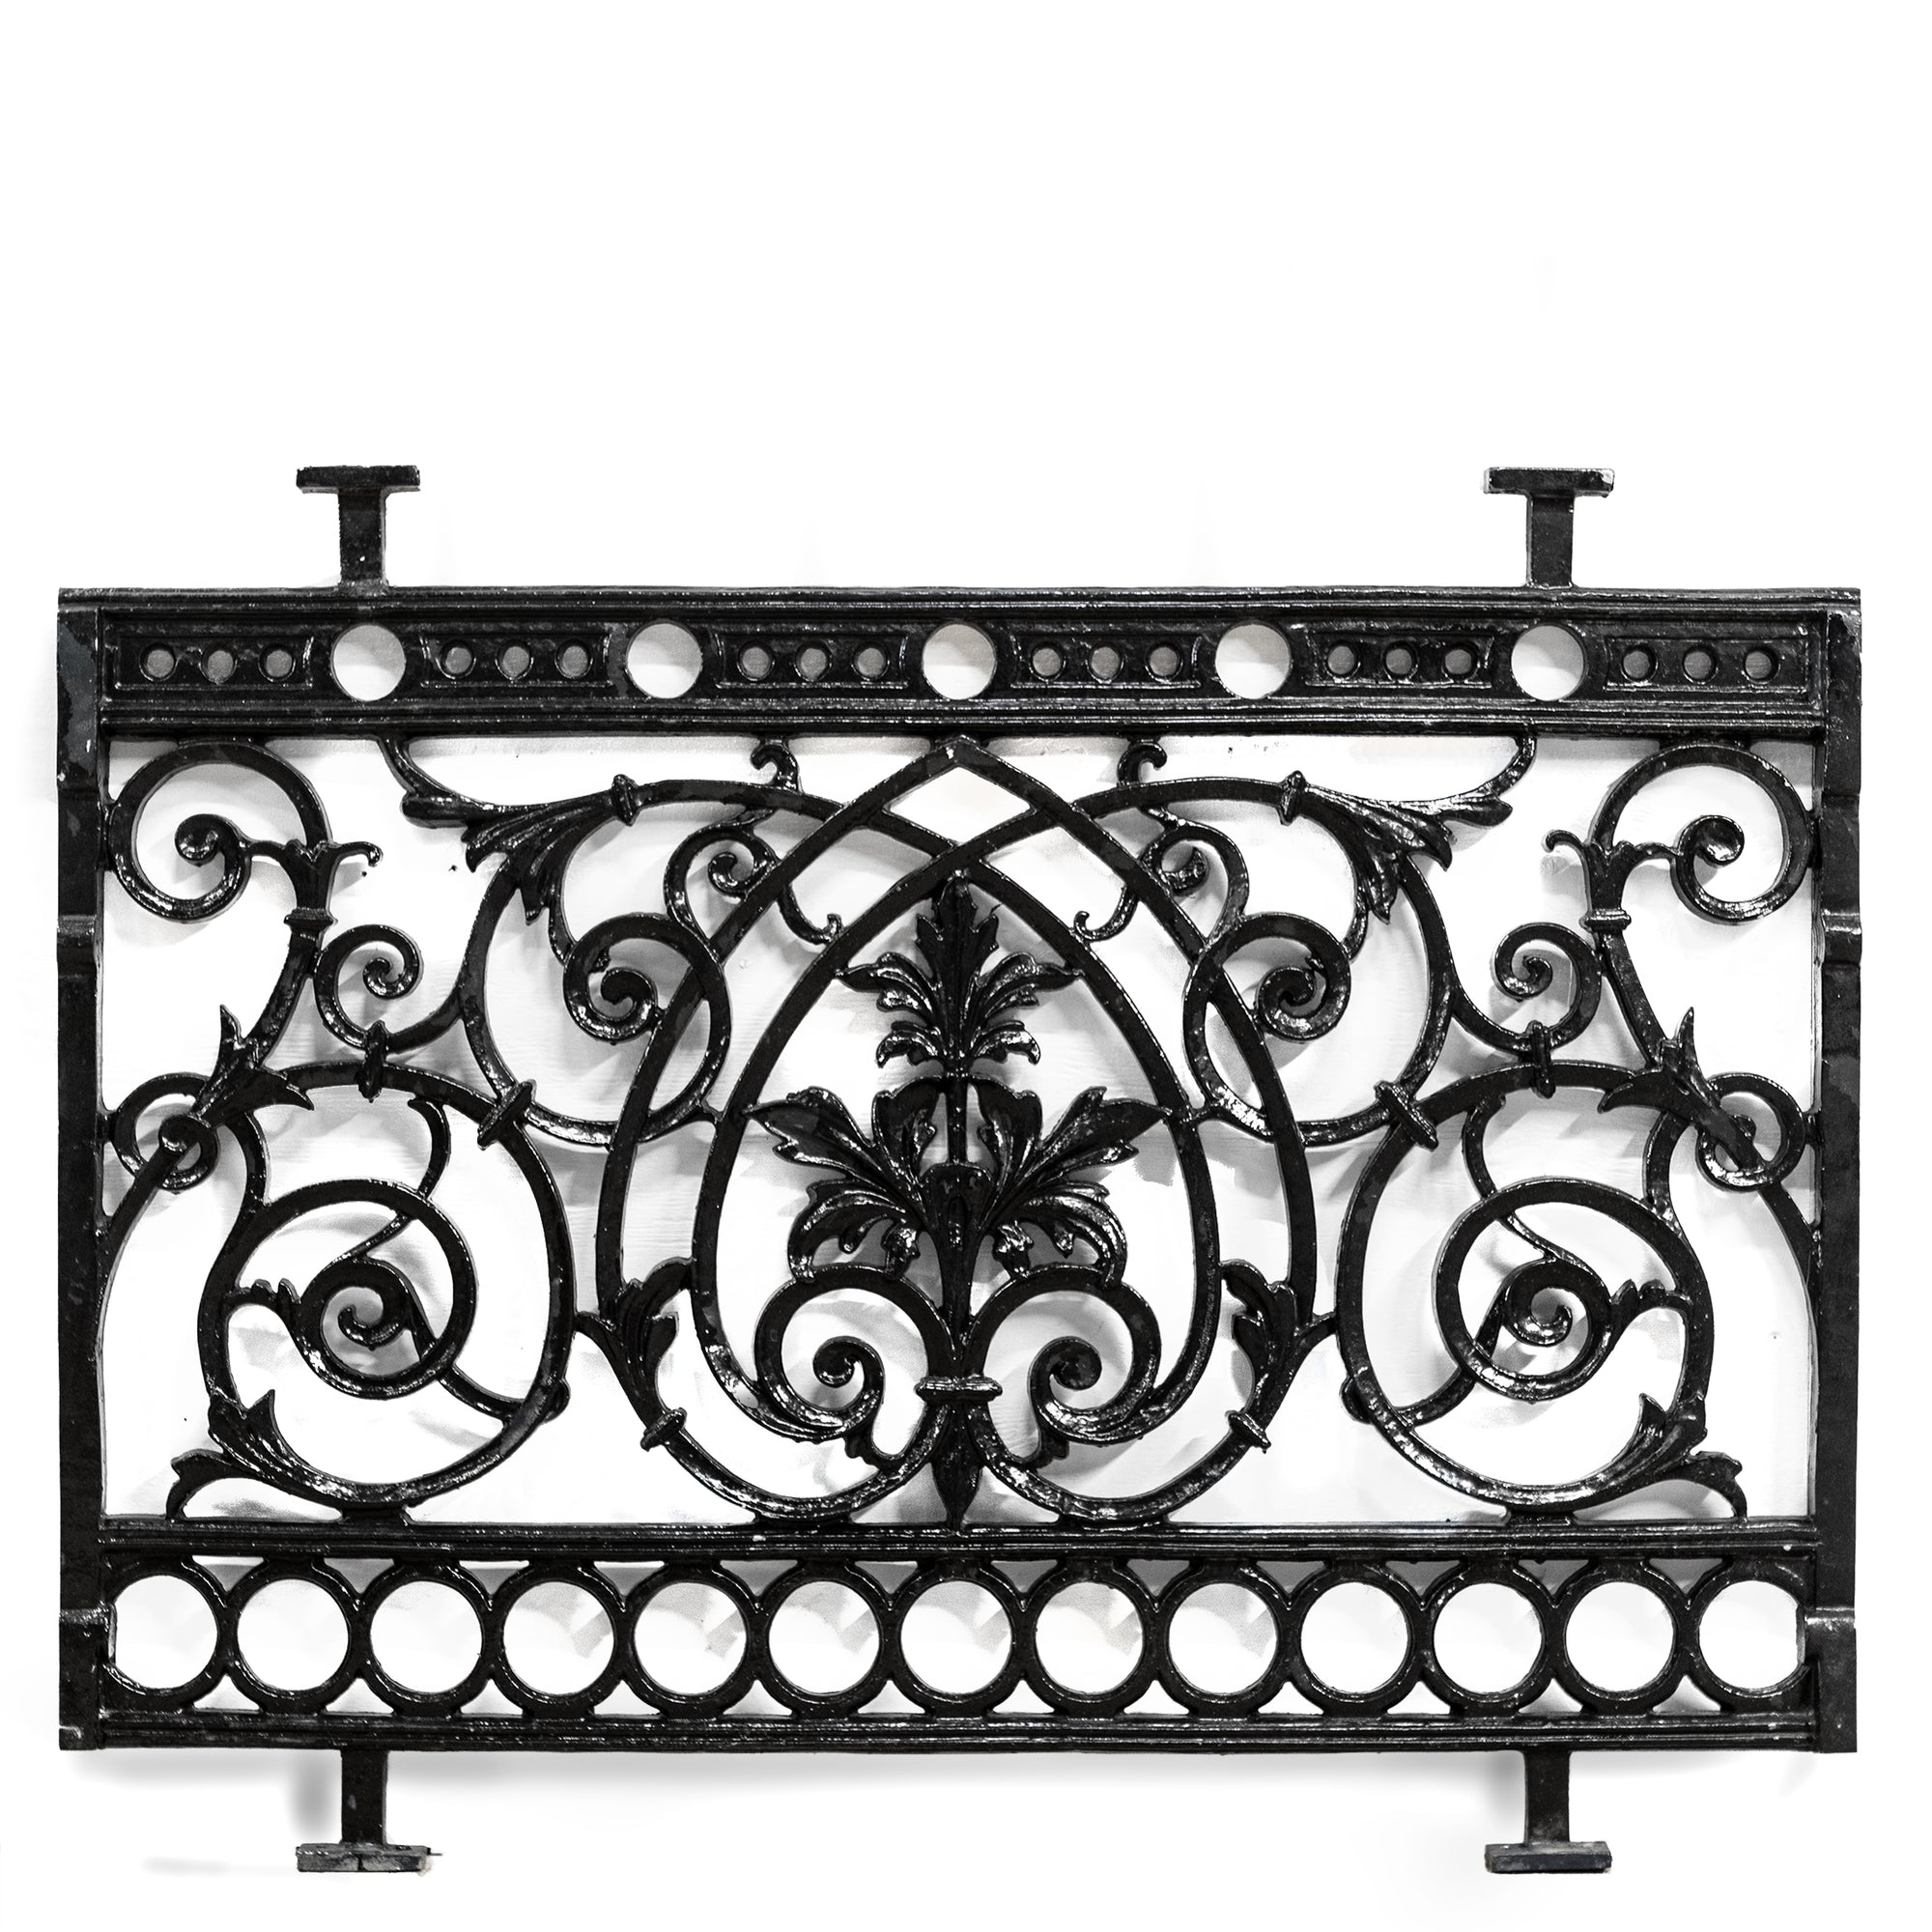 Reclaimed Ornate Victorian Style Cast Metal Railings (11 panels) | The Architectural Forum